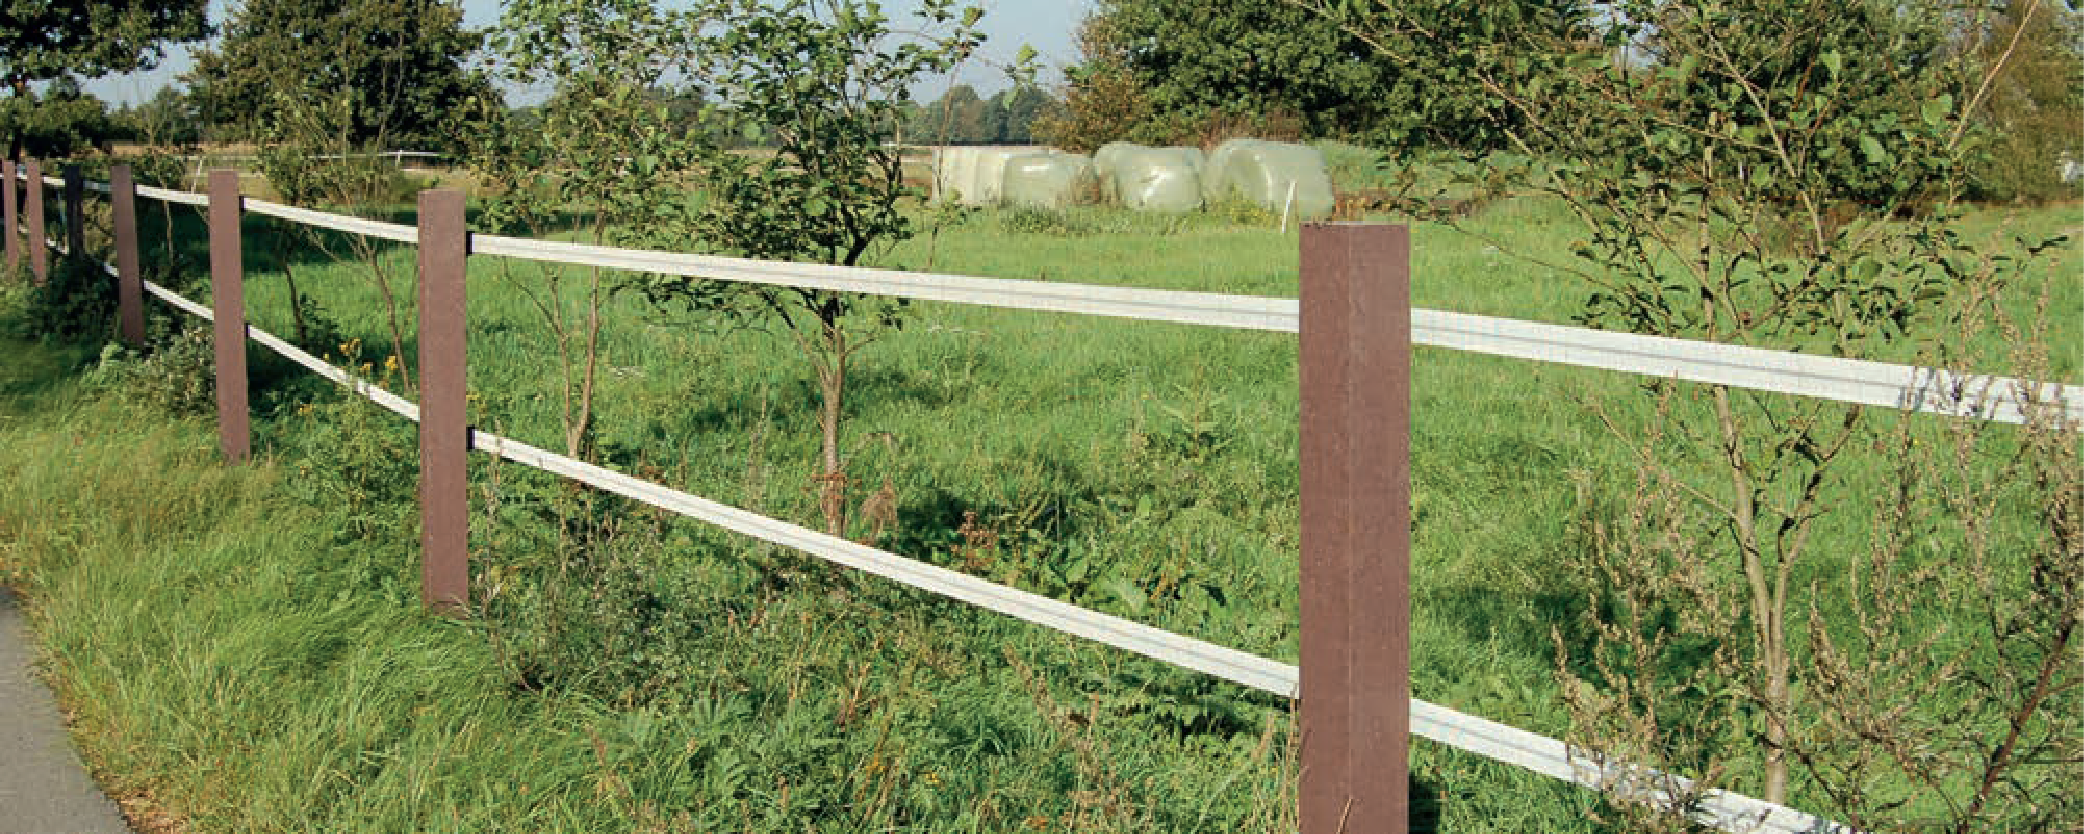 Equestrian Product Square Fence